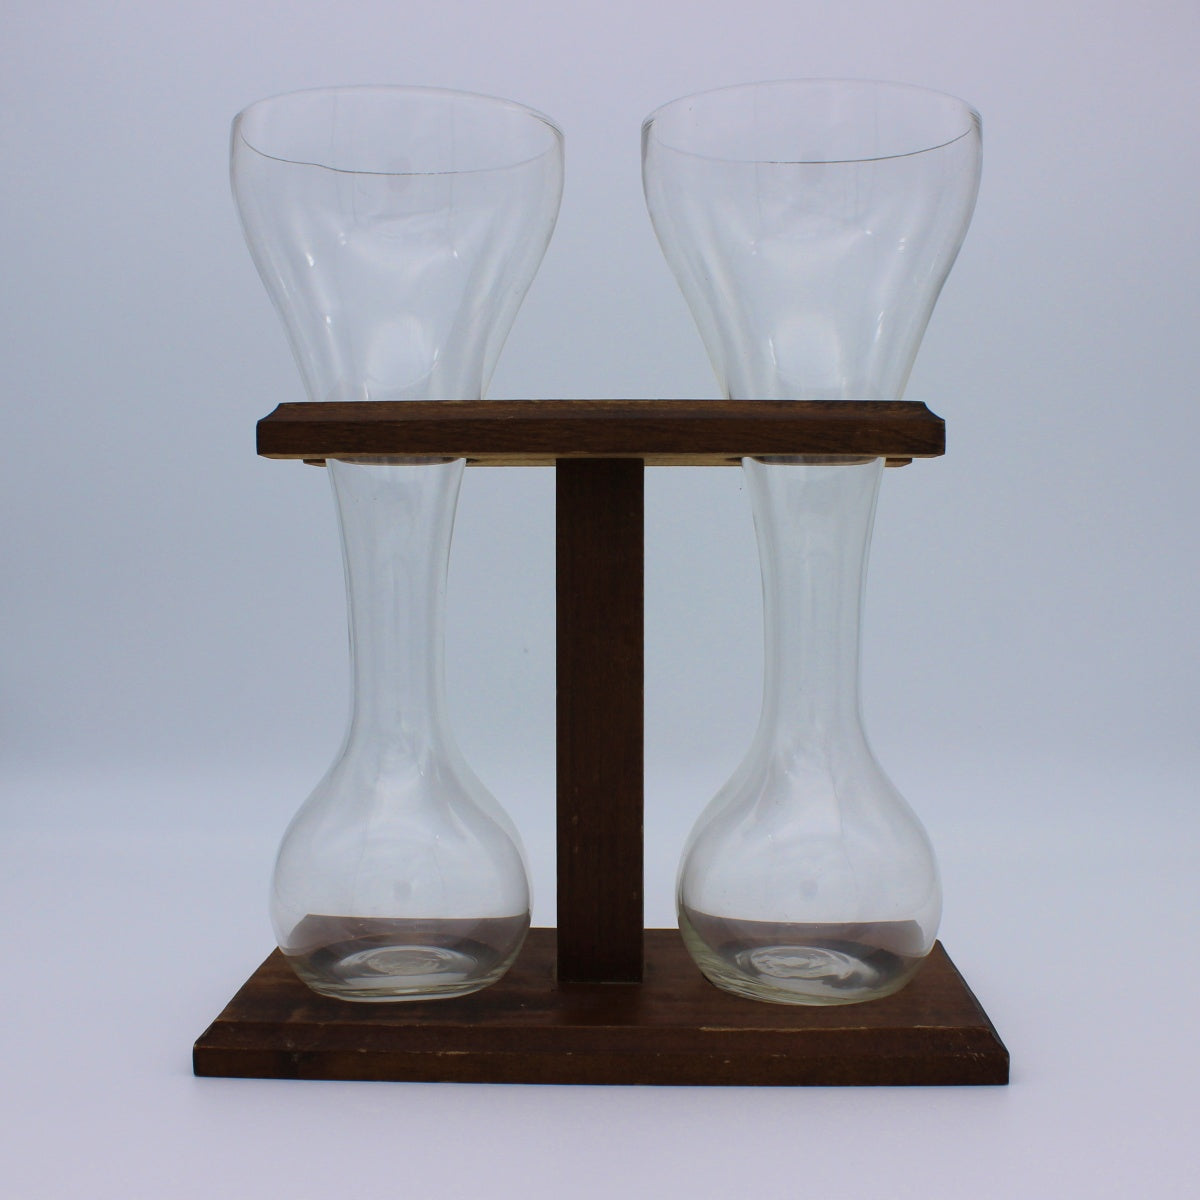 Quarter Yard Beer Set with Wood Stand (USED)